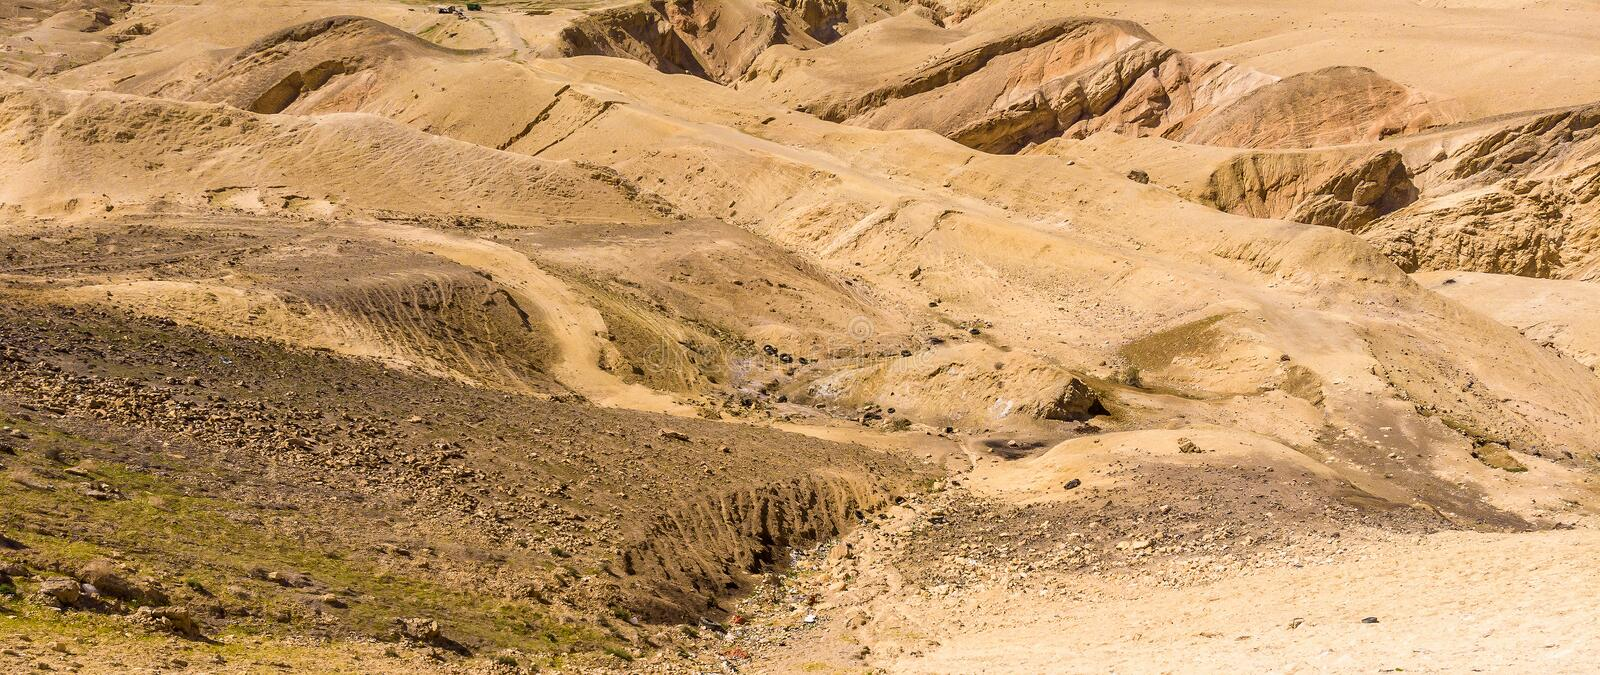 Stone desert in Jordan, hostile landscape next to the Kings Highway in front of Wadi Mujib, deeply cut into the landscape stock photos